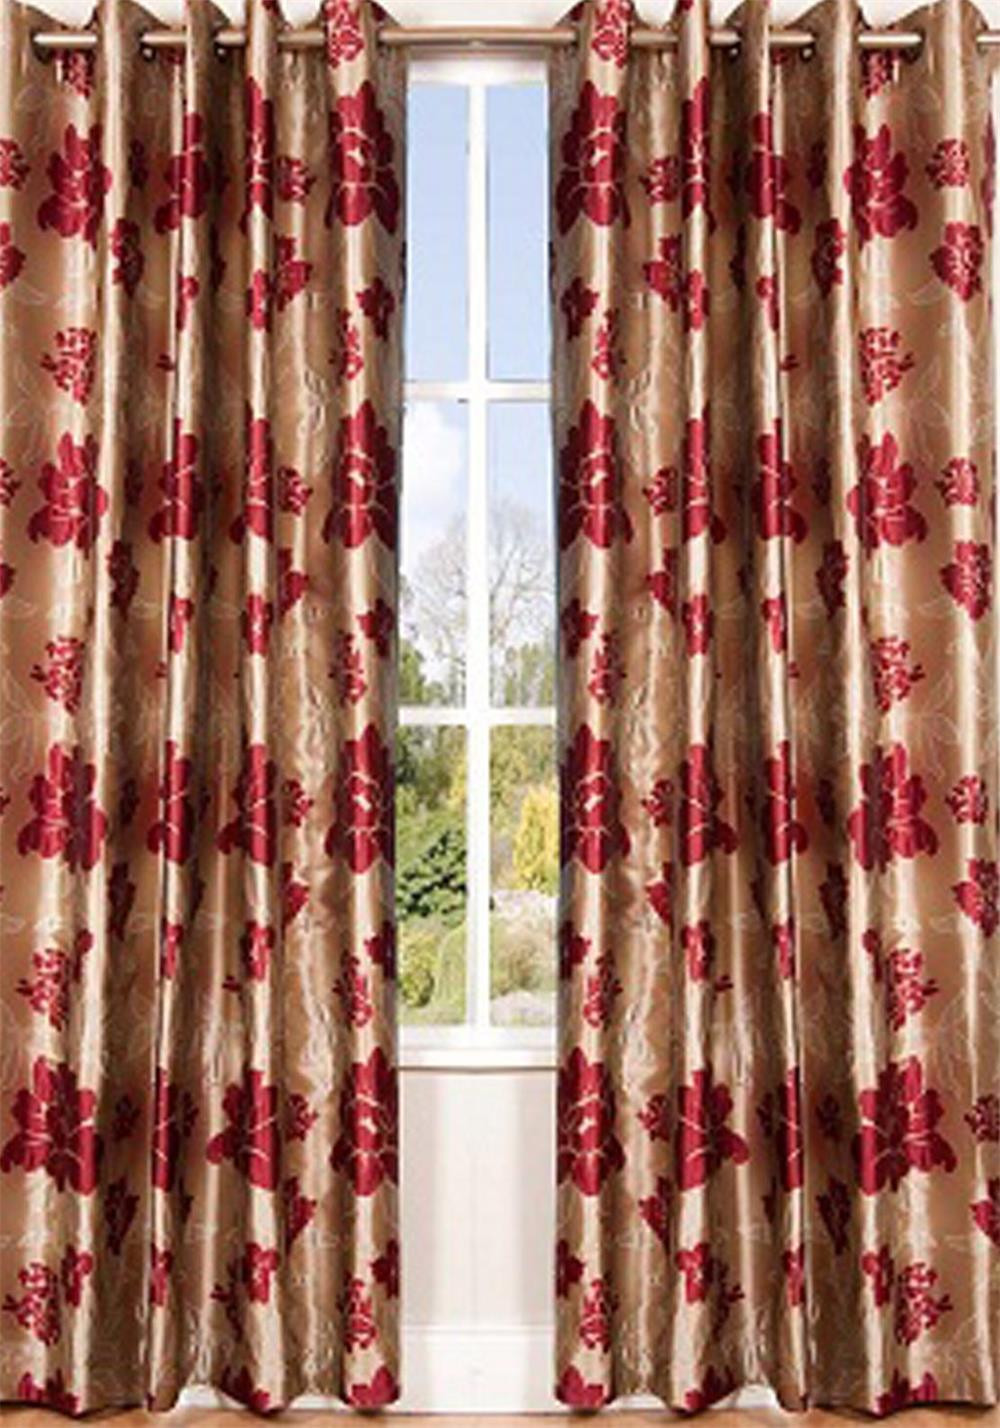 Scatterbox Wisteria Fully Lined Ready-Made Curtains, Red and Chocolate